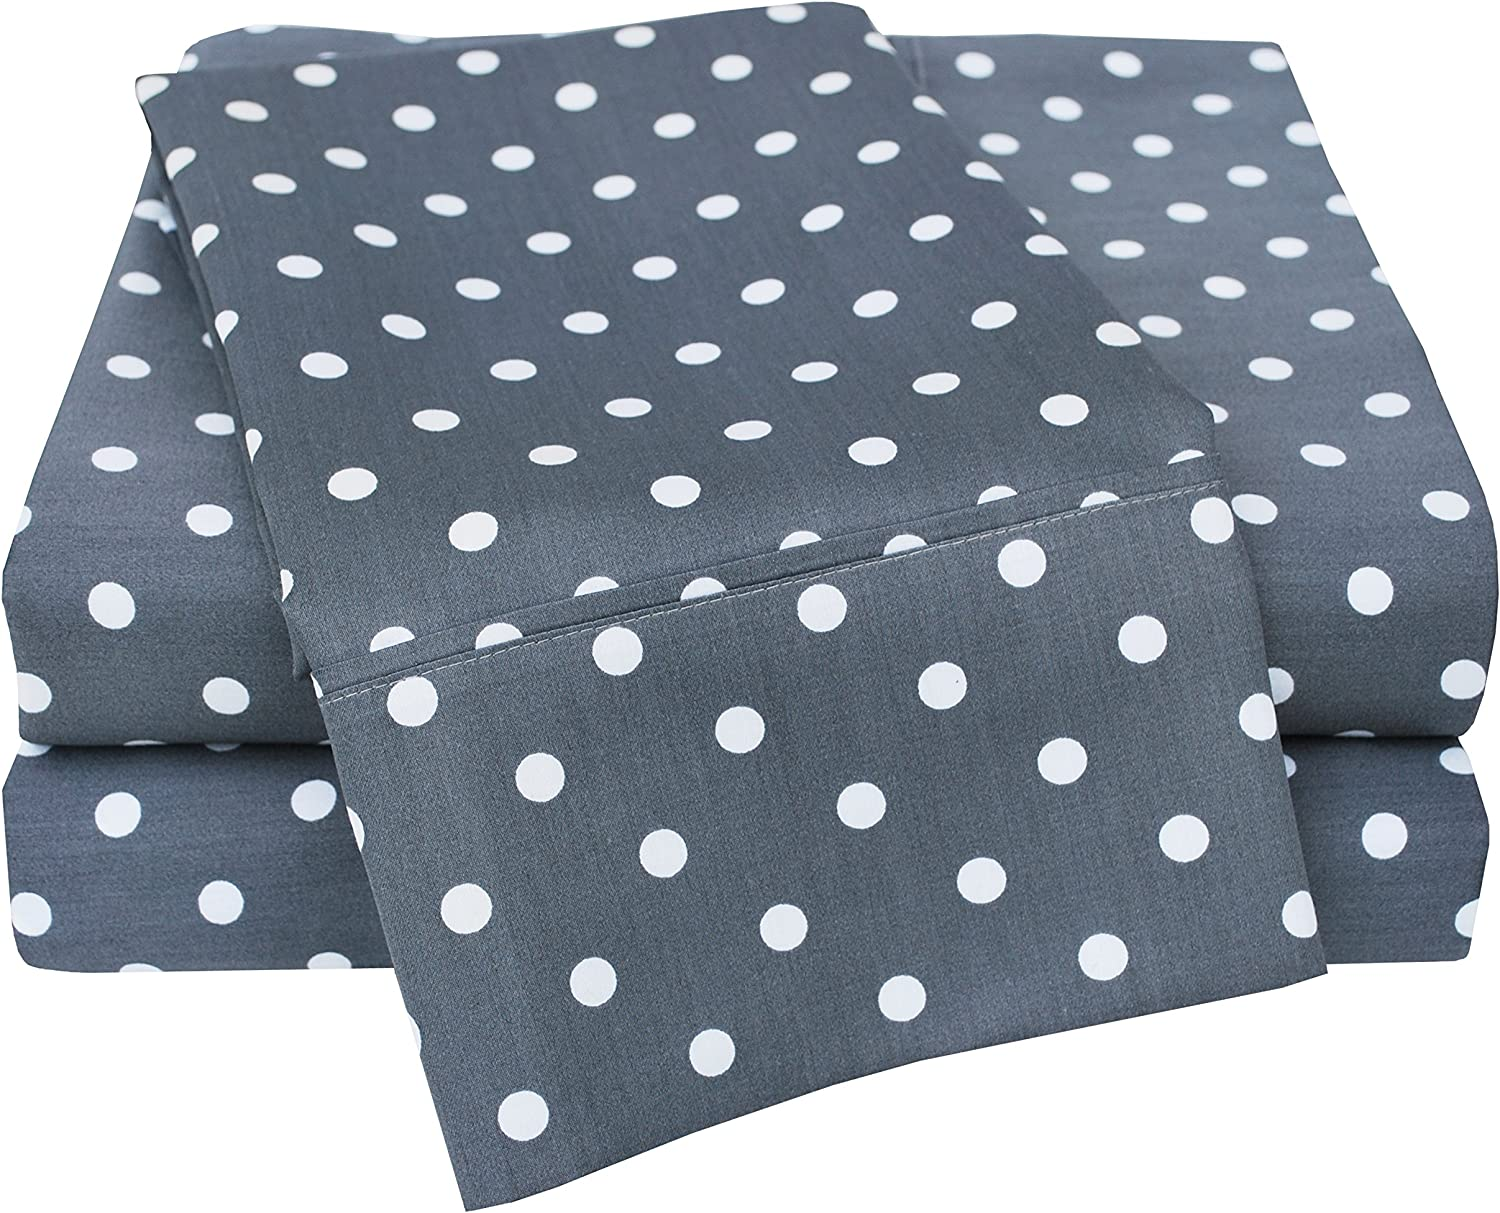 Superior Polka Dot Sheet Set, 600 Thread Count Cotton Blend Bedding Sets, Soft and Wrinkle Resistant Sheets with Deep Fitting Pockets - Full, Grey